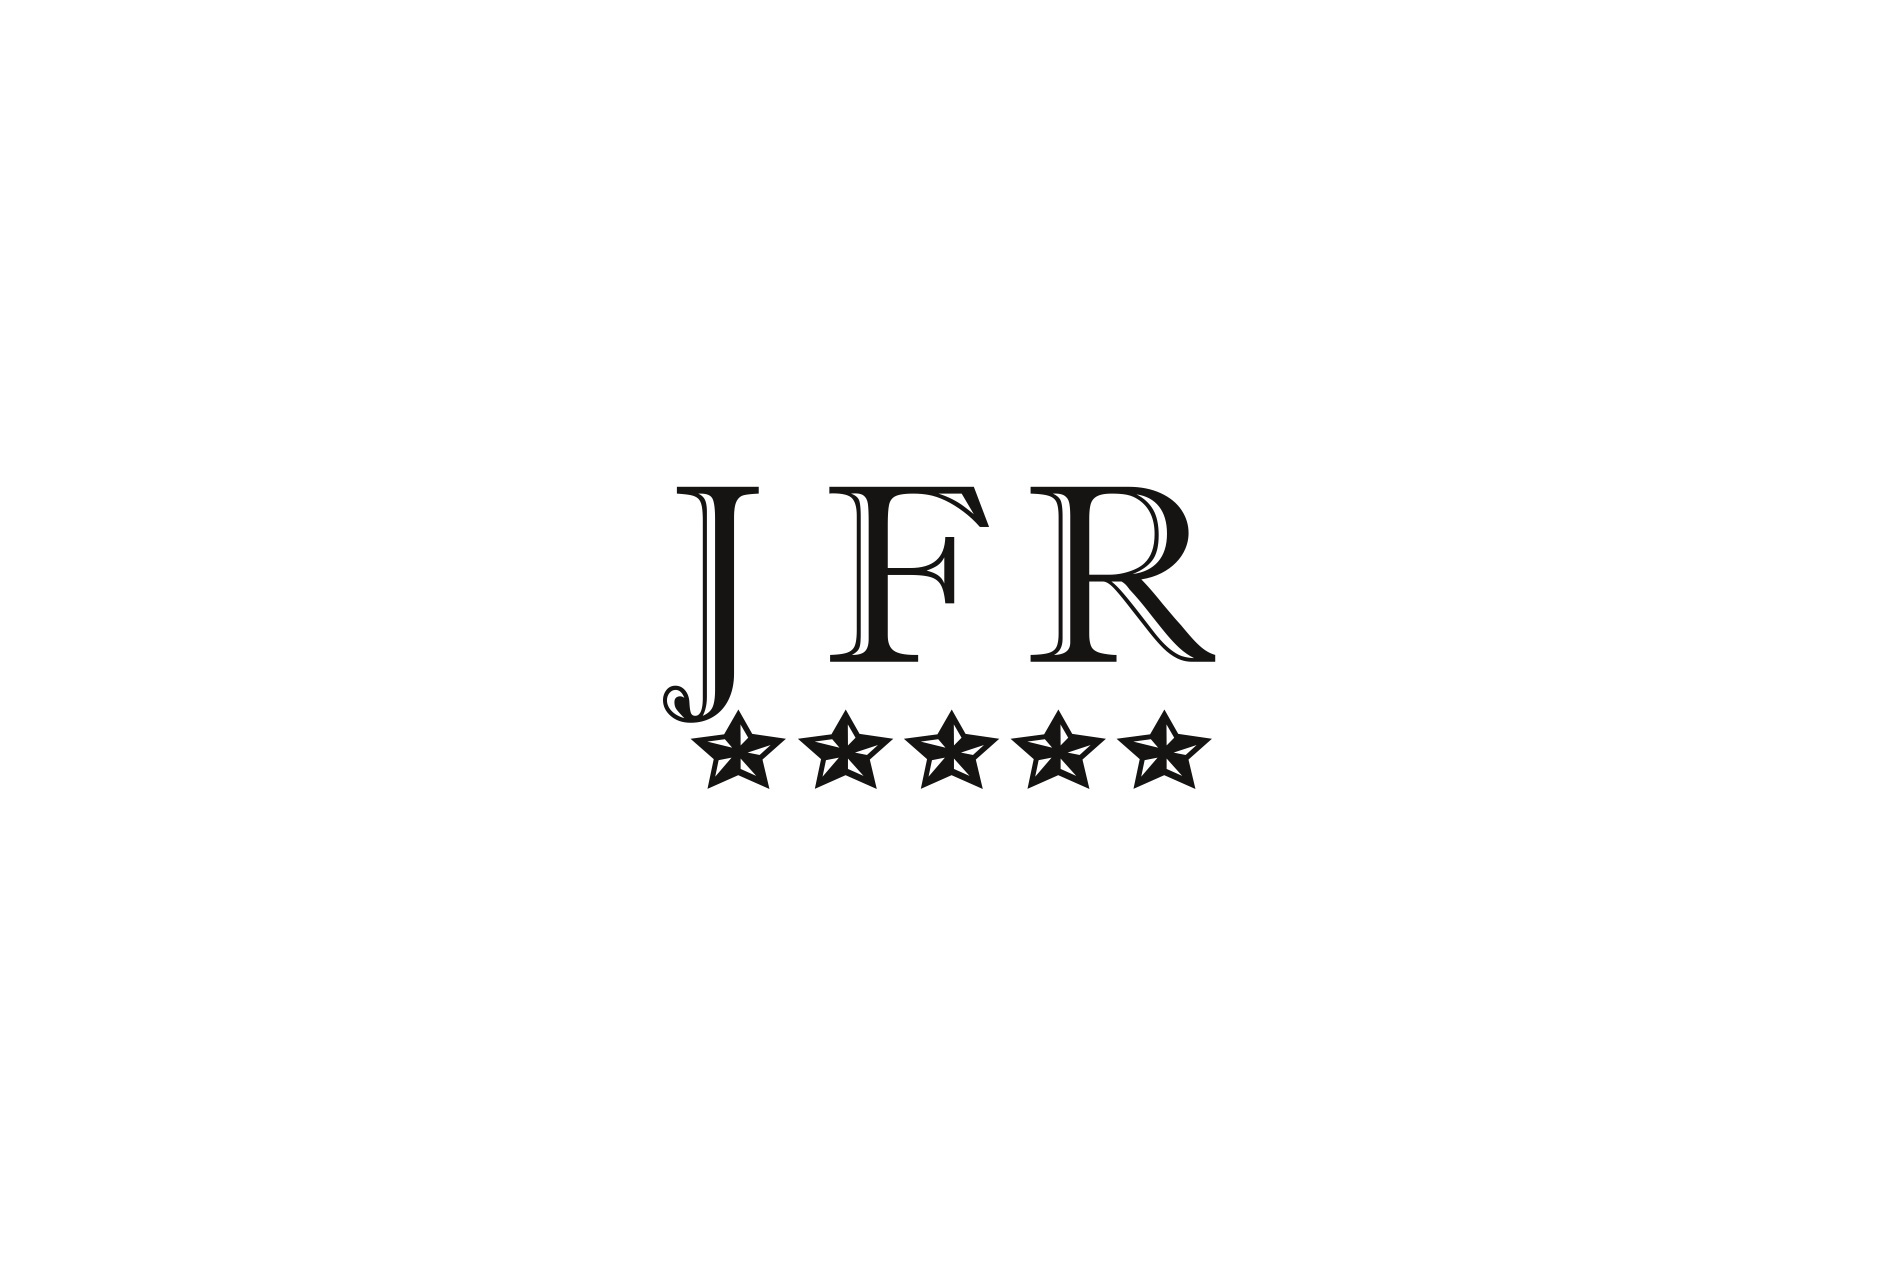 J.F.R. (Just for Retailers)